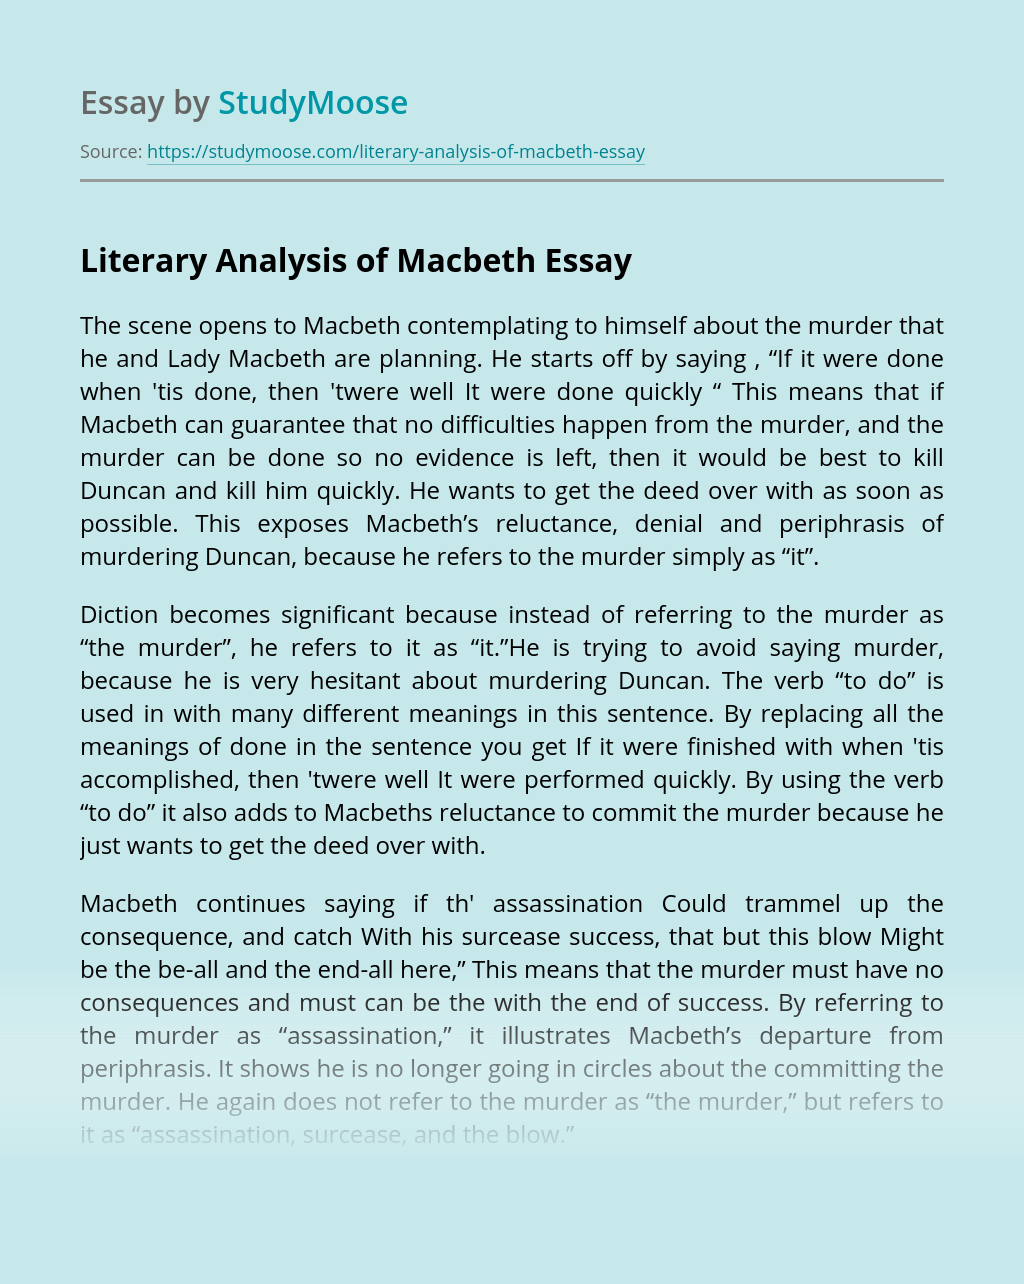 Literary Analysis of Macbeth